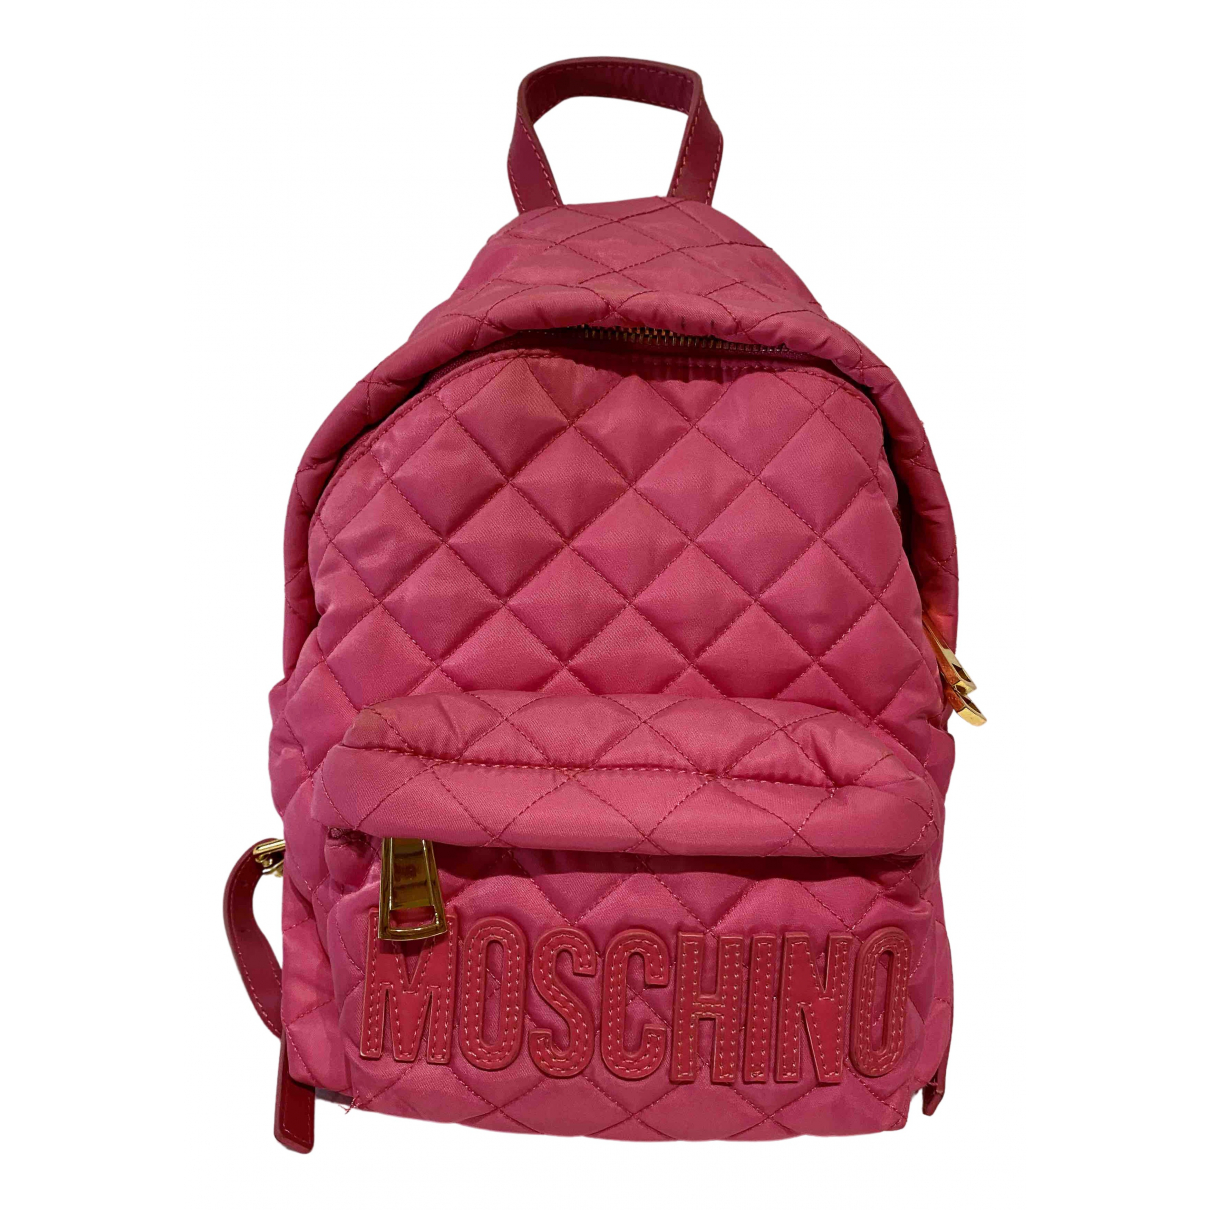 Moschino \N Pink Cloth backpack for Women \N